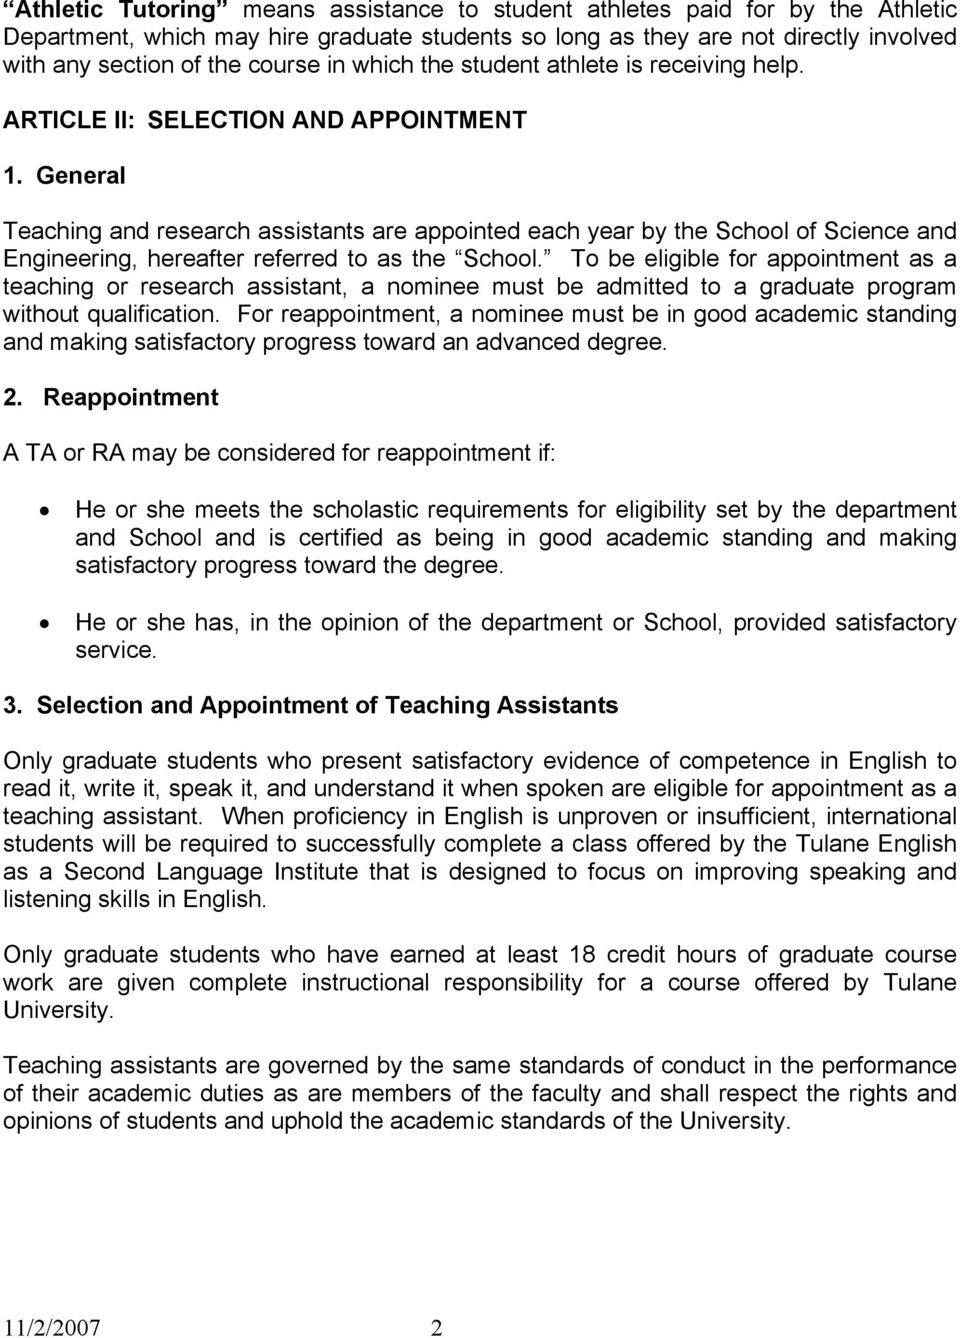 General Teaching and research assistants are appointed each year by the School of Science and Engineering, hereafter referred to as the School.